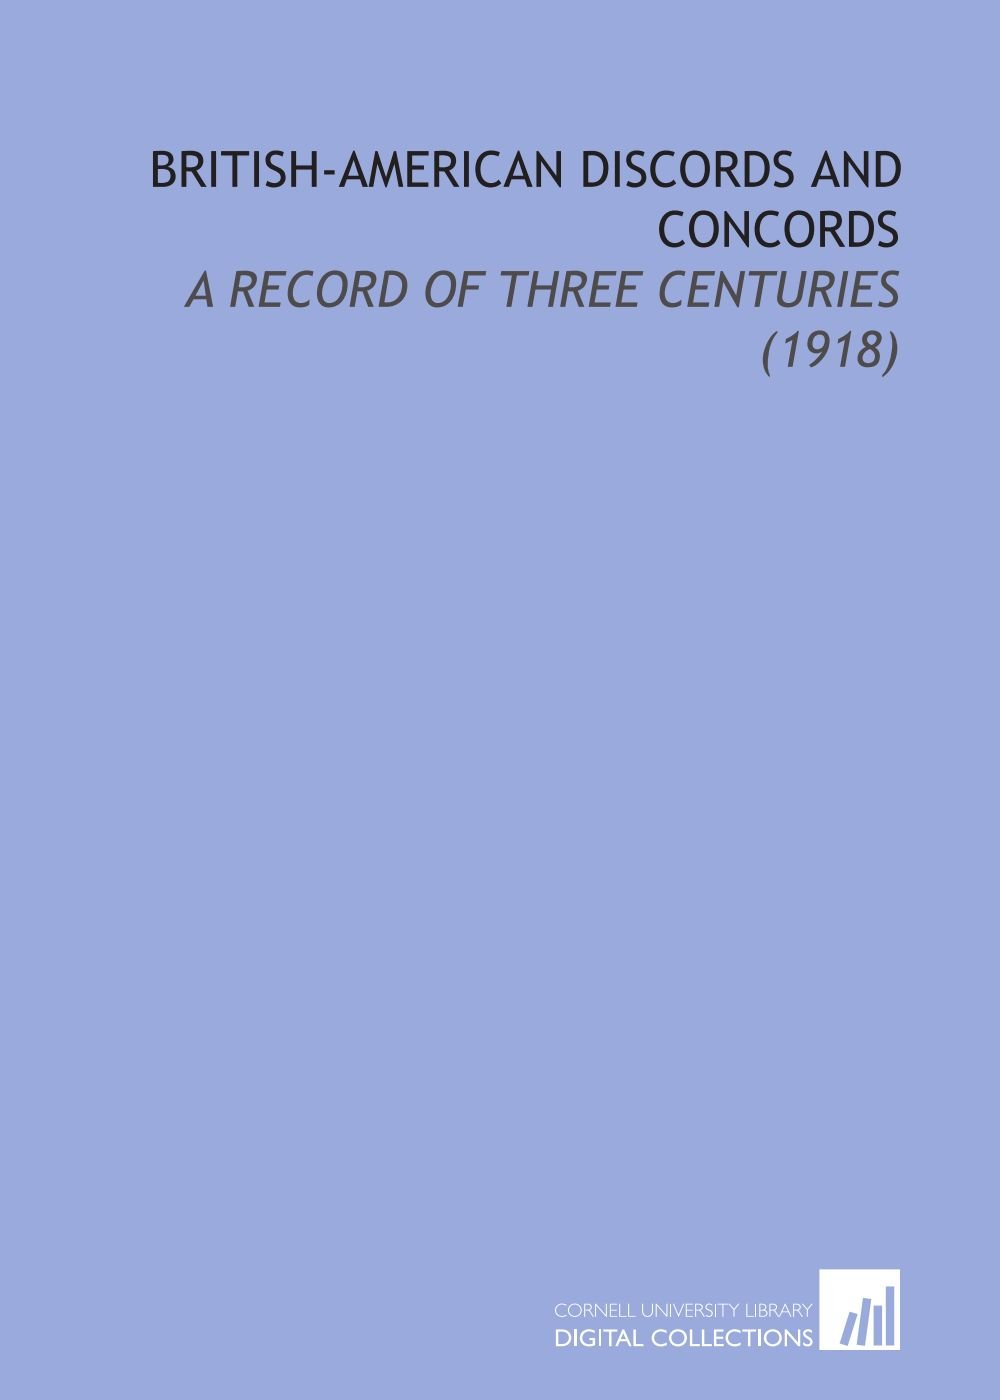 Download British-American Discords and Concords: A Record of Three Centuries (1918) ebook